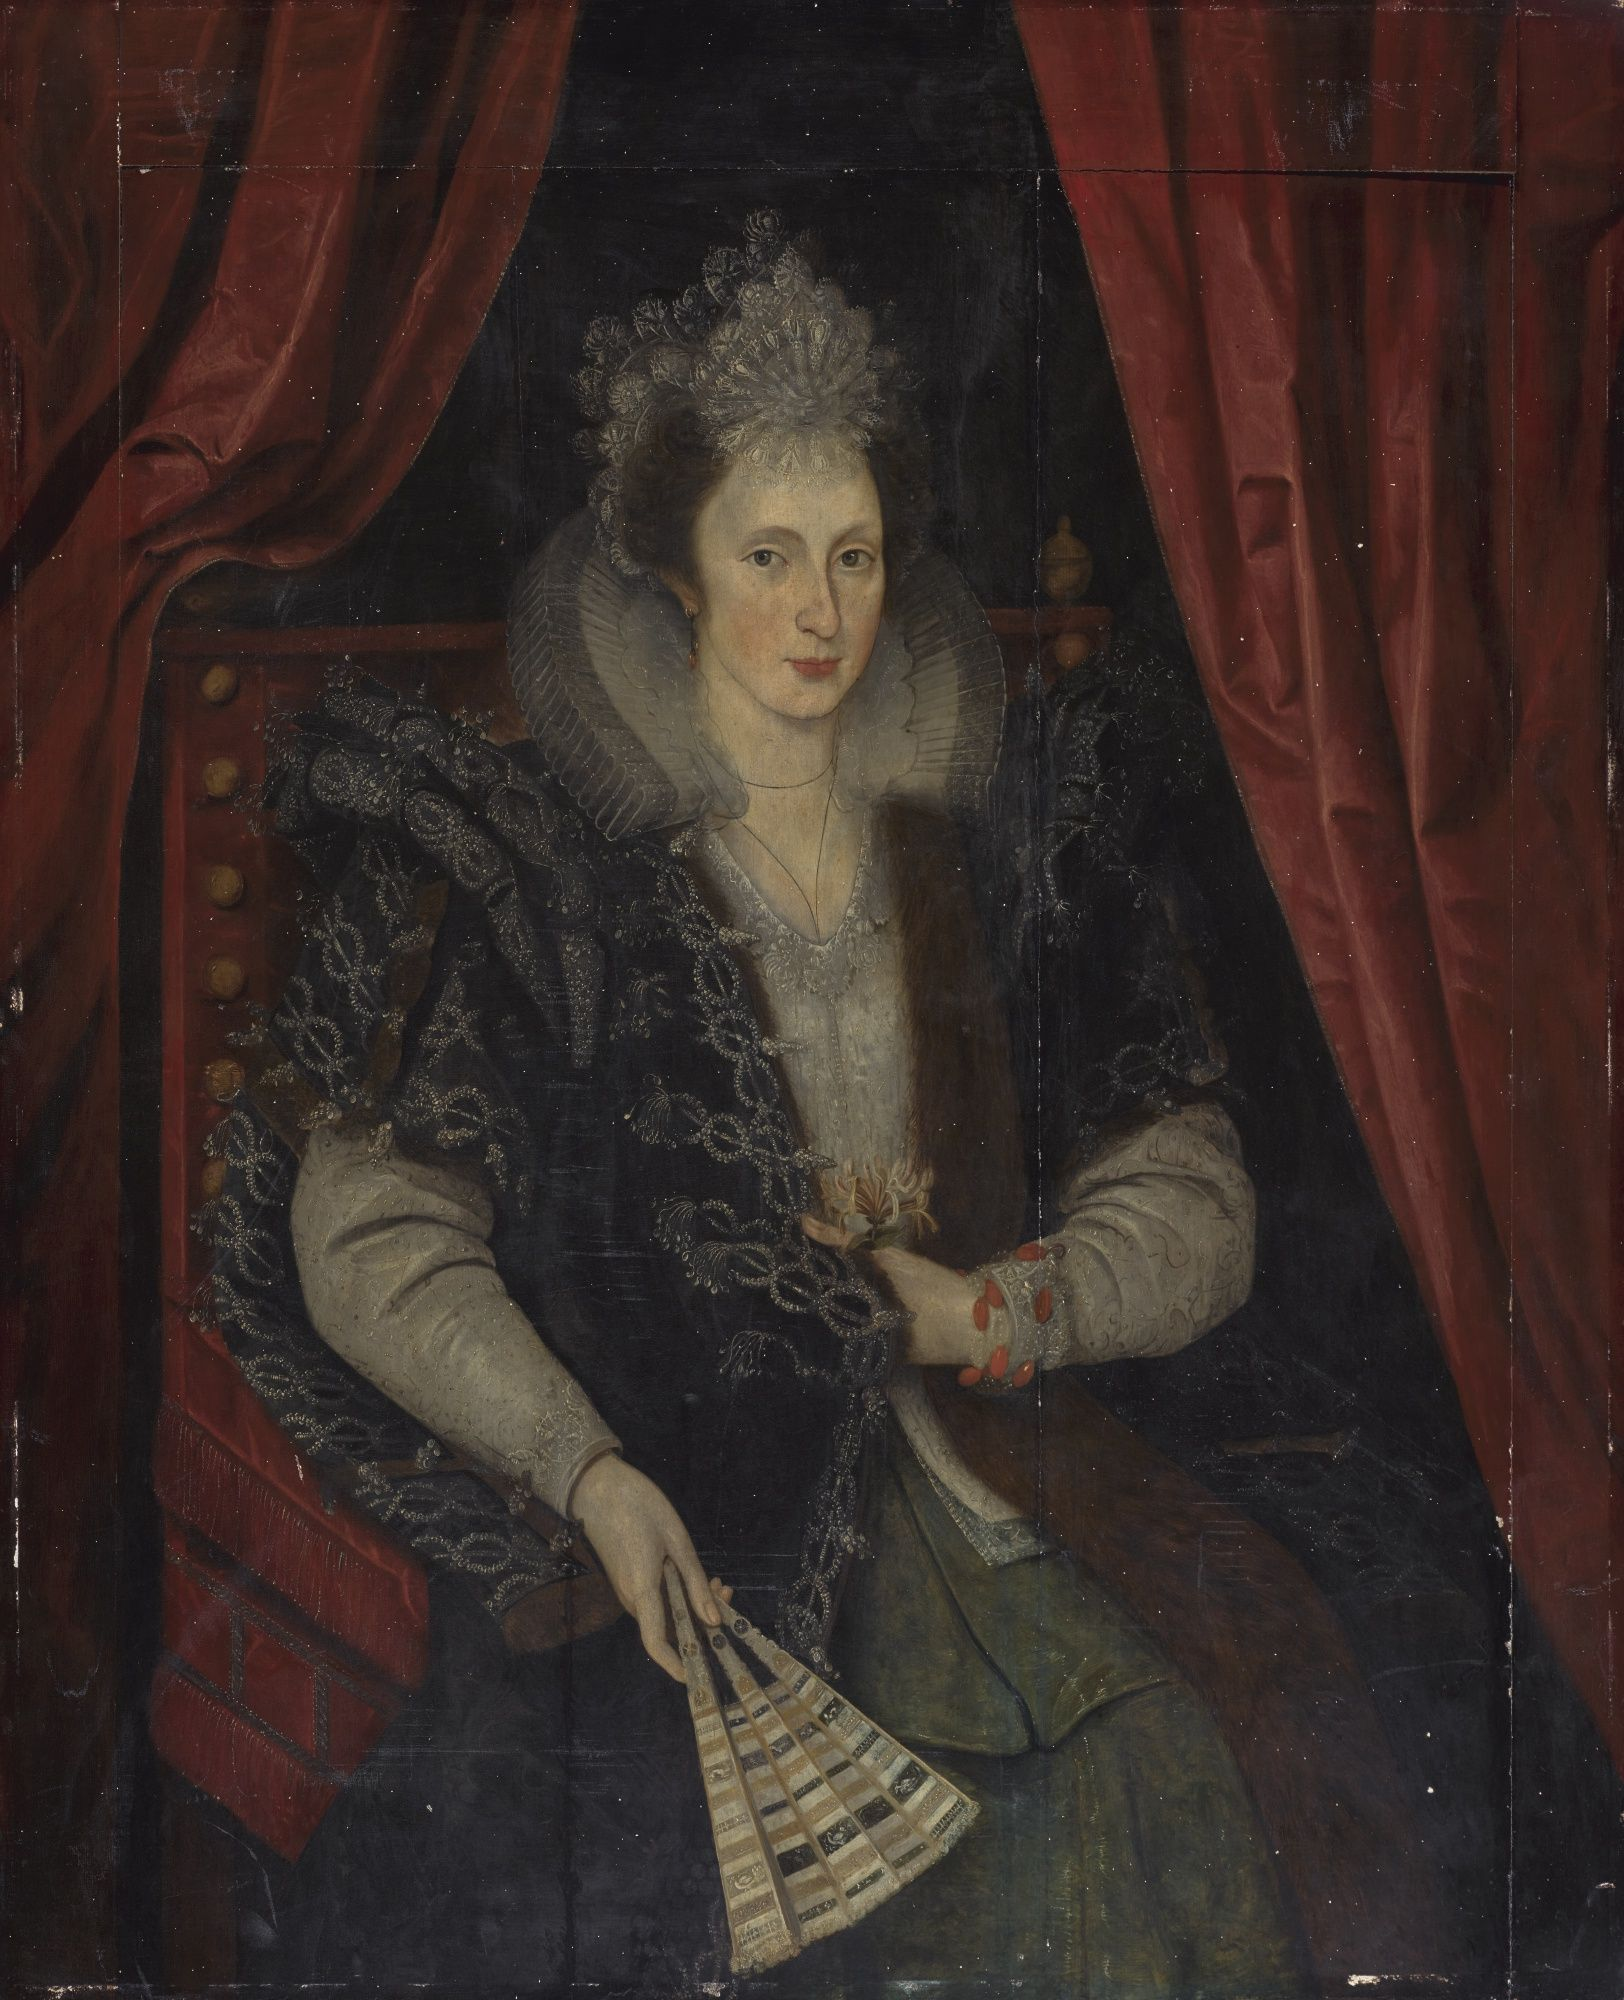 Auction Direct Sackville >> 1610, sold as Gheeraerts. Lady Mary Sackville. daughter of Thomas Sackville, 1st earl of Dorset ...